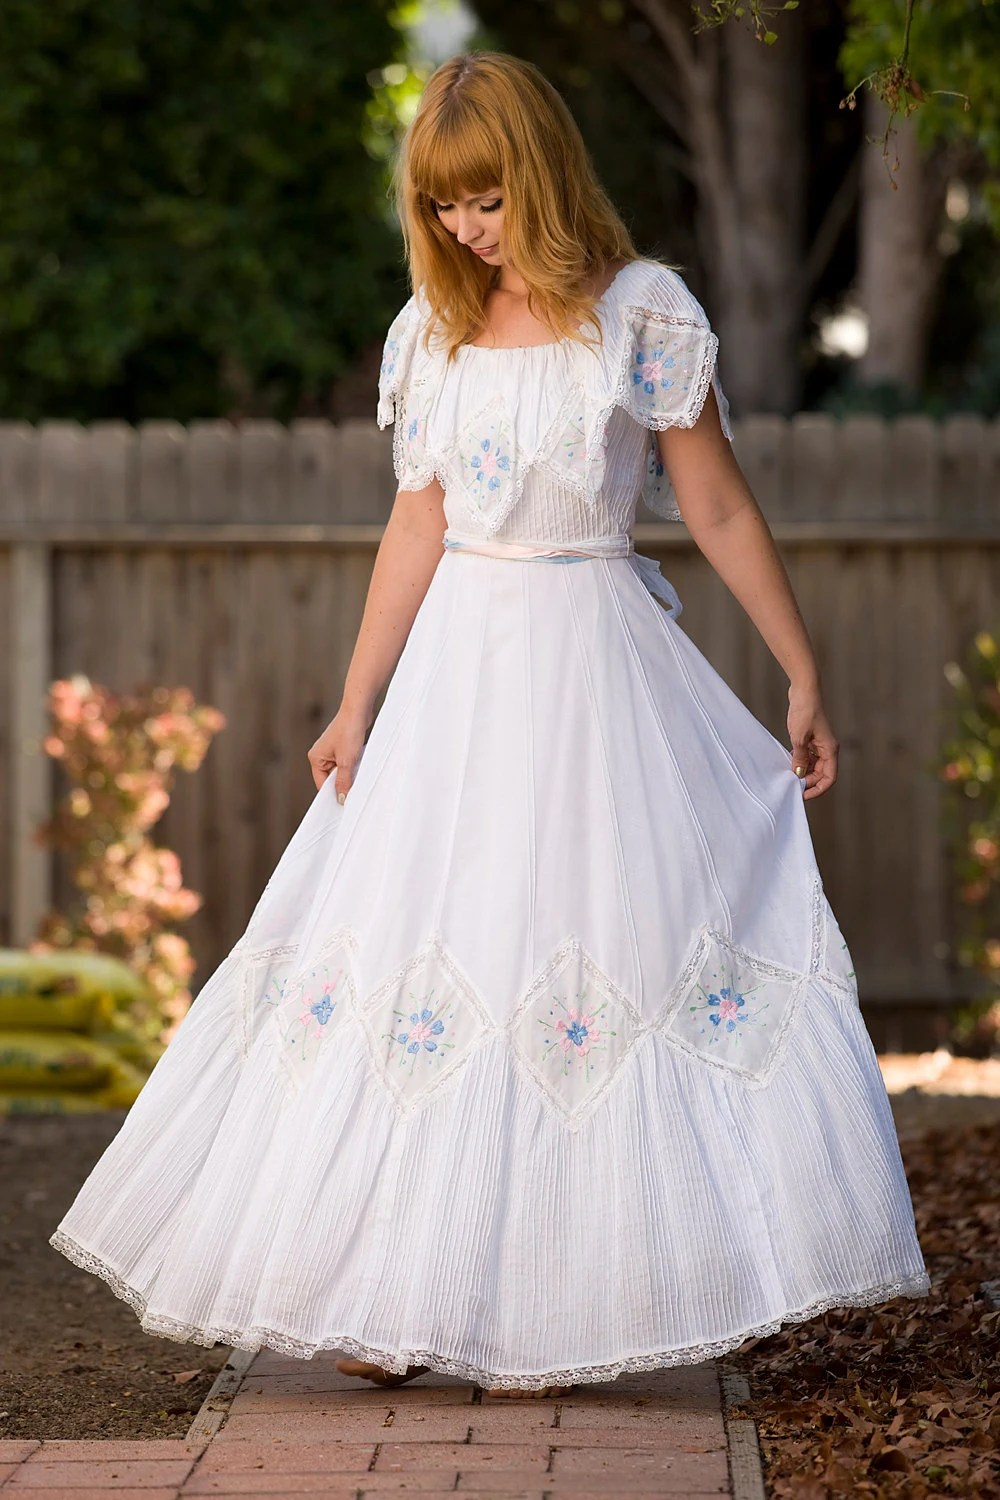 s embroidered mexican wedding dress mexican wedding dress s Embroidered Mexican Wedding Dress zoom